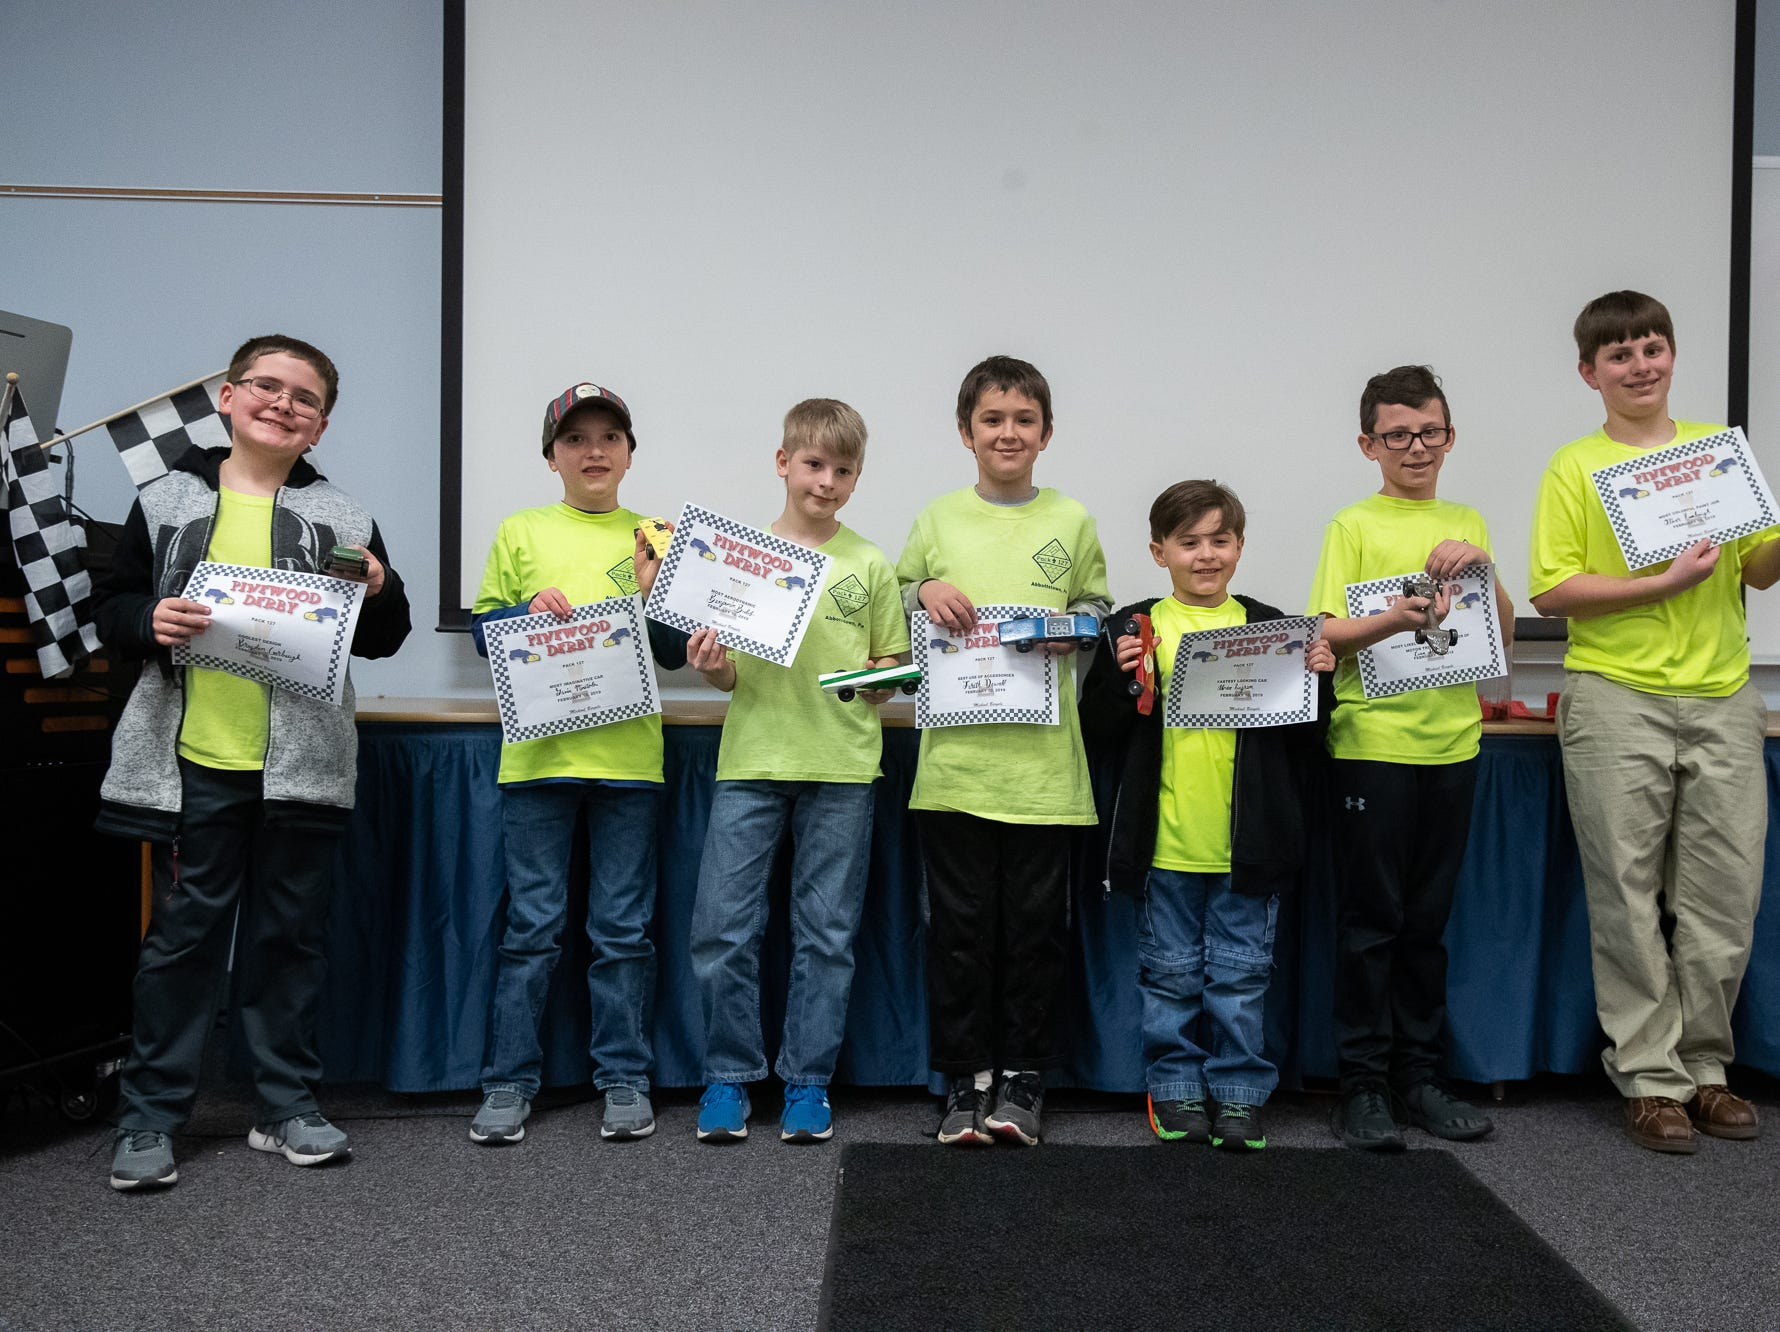 Cub scouts pose with awards for their custom cars during the cub scouts pack 127 Pinewood Derby event at Lincoln Intermediate Unit 12, Sunday, Feb. 10 in New Oxford. The scouts had a month to design their custom pinewood cars to race in the event.